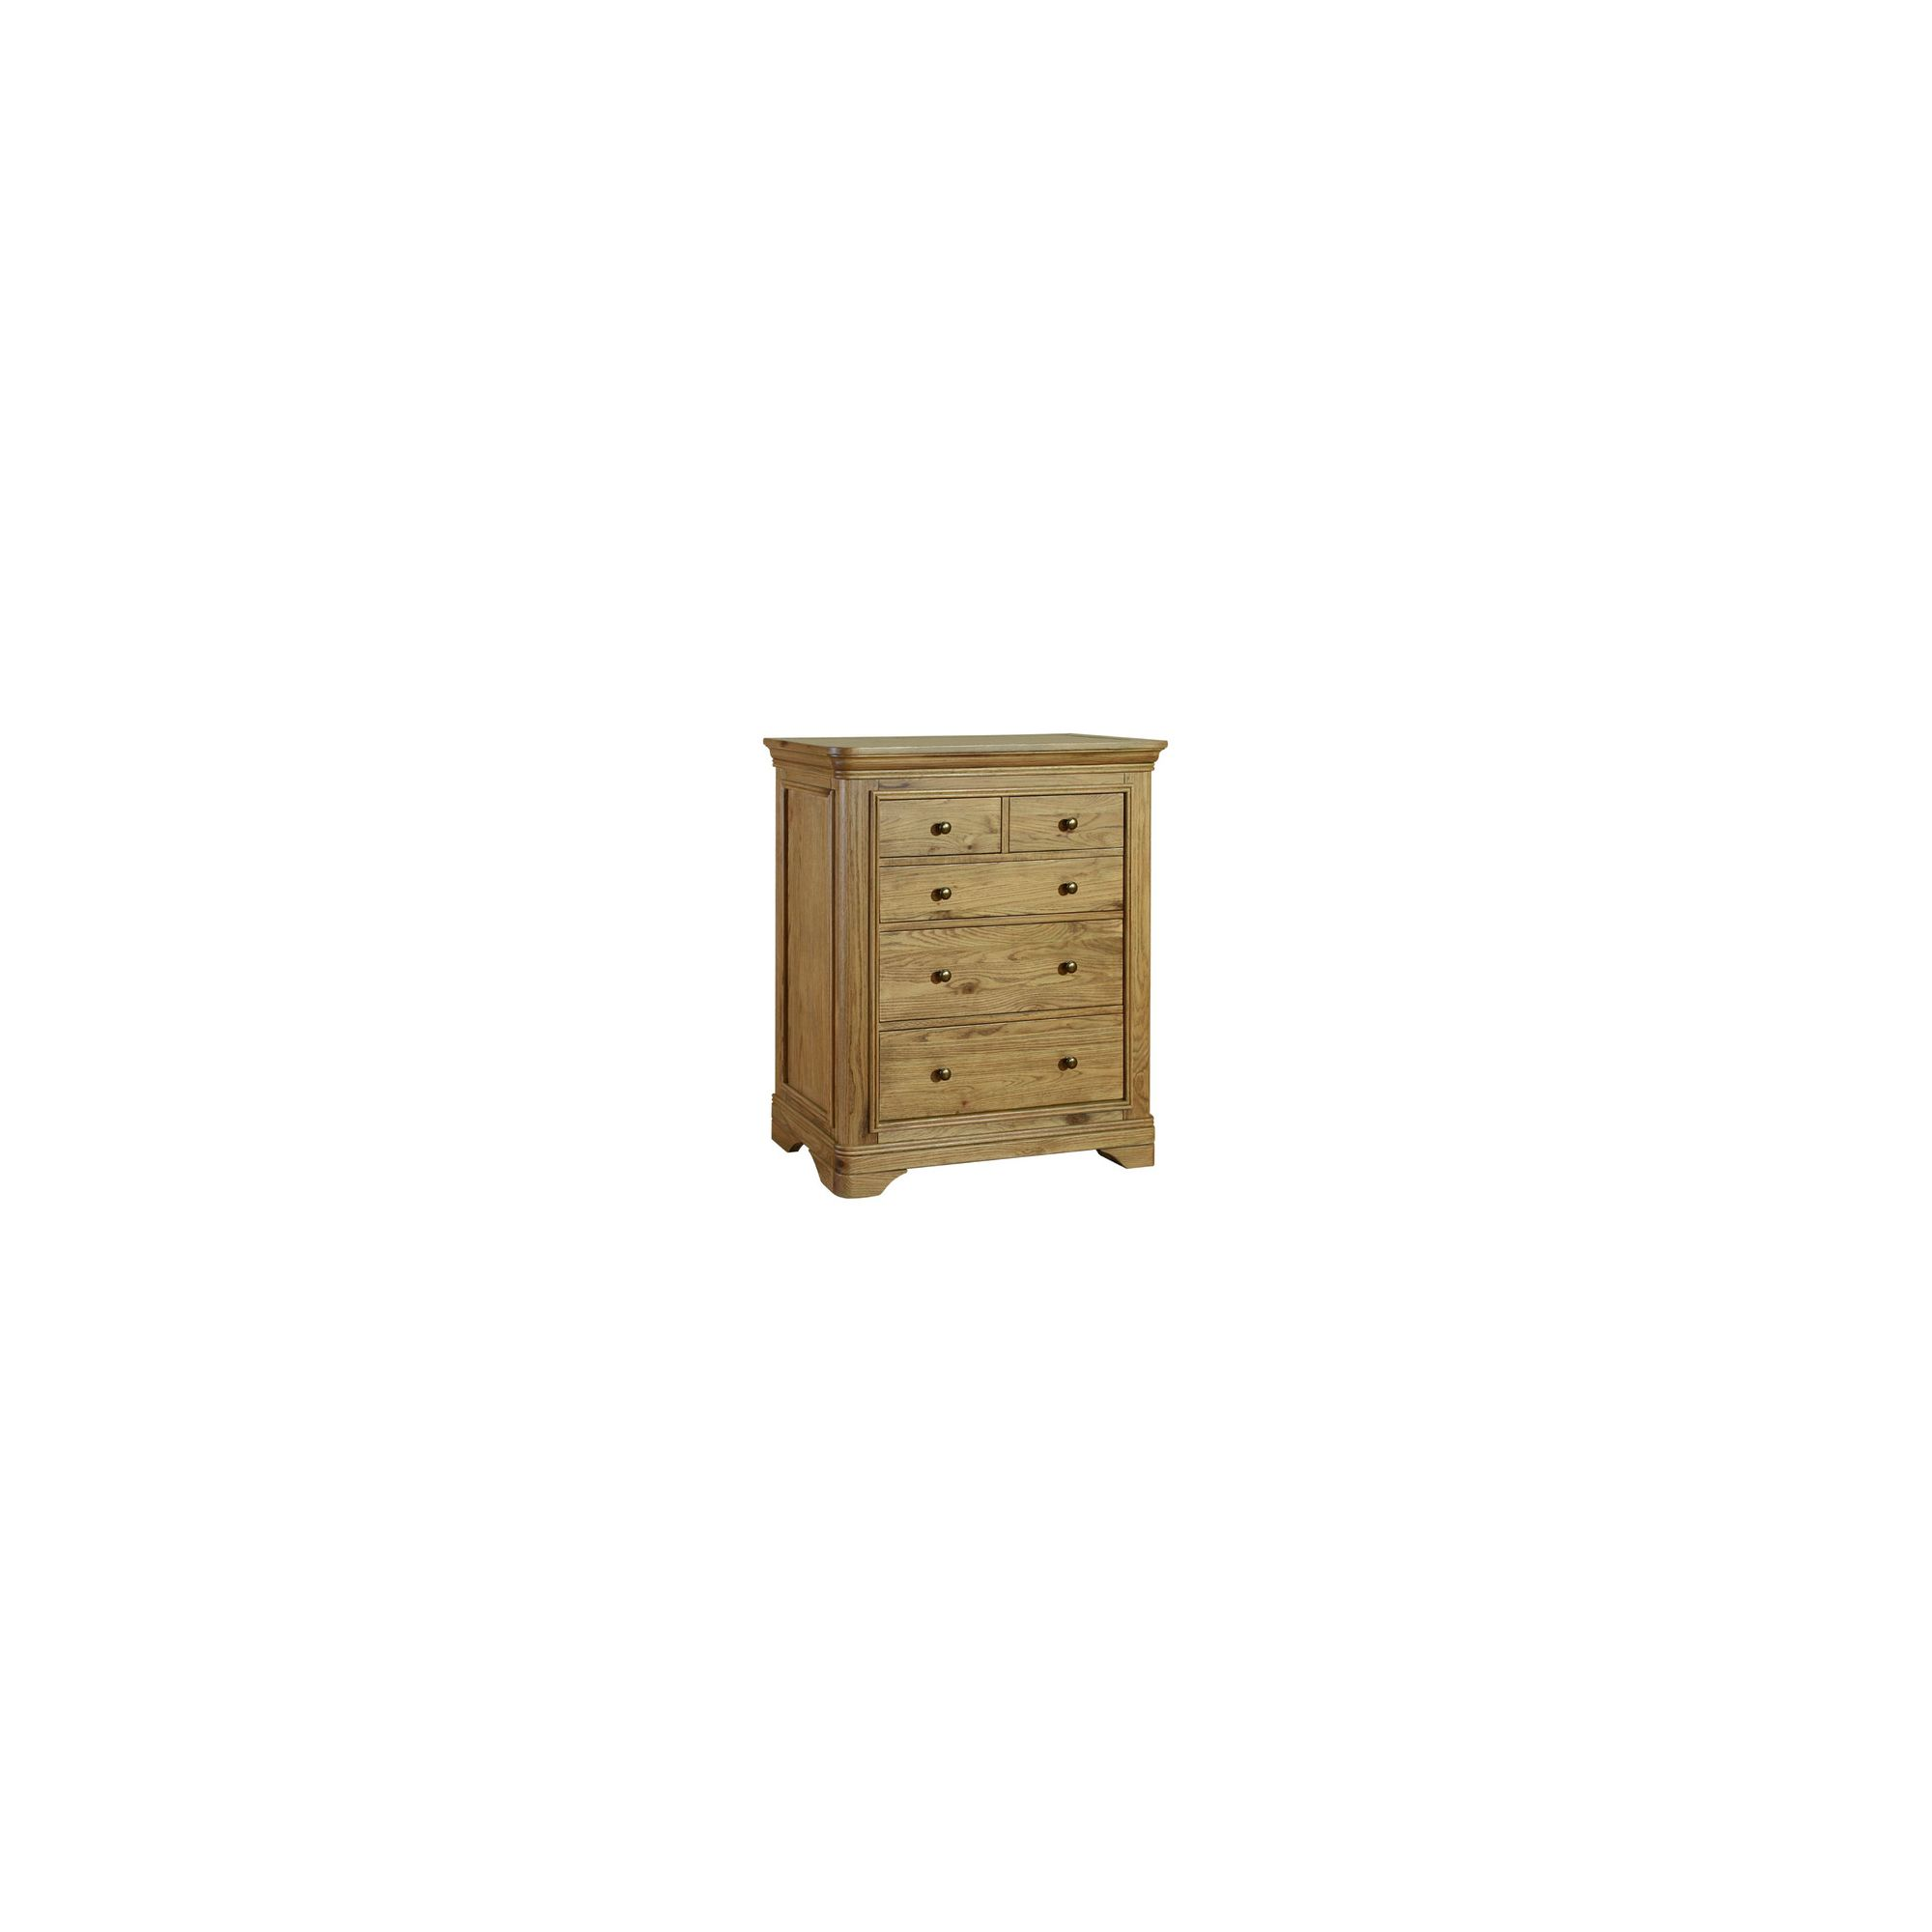 Kelburn Furniture Loire 5 Drawer Chest at Tesco Direct